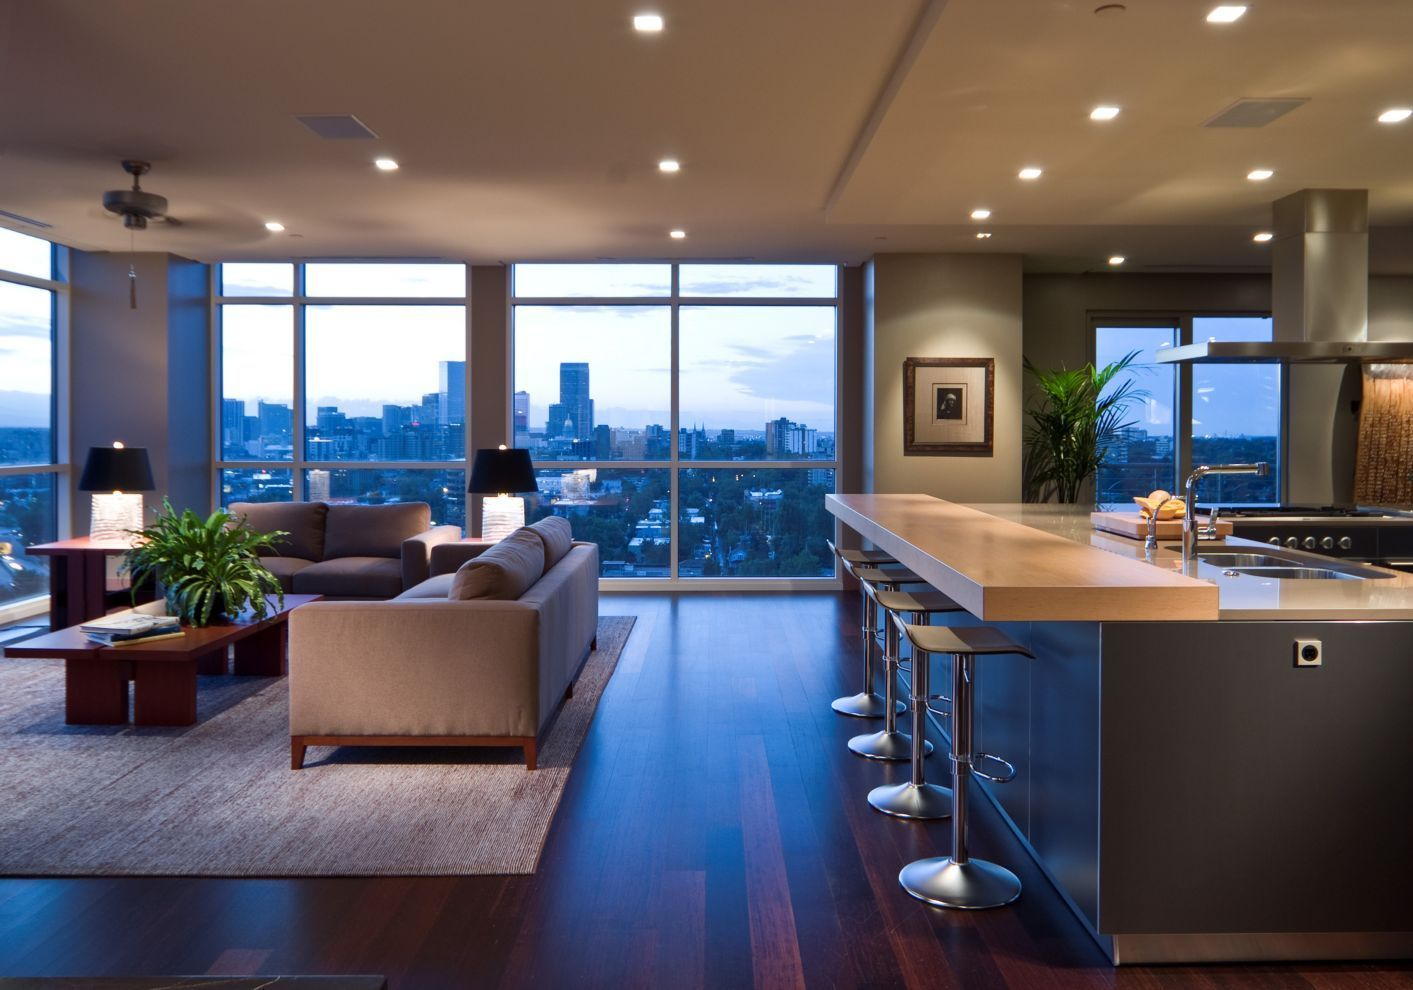 Modern Open Floor Plan Kitchen Completed By Bulthaup Denver Luxeco Luxury Apartment Interior Design Luxury Apartments Interior Modern Apartment Design